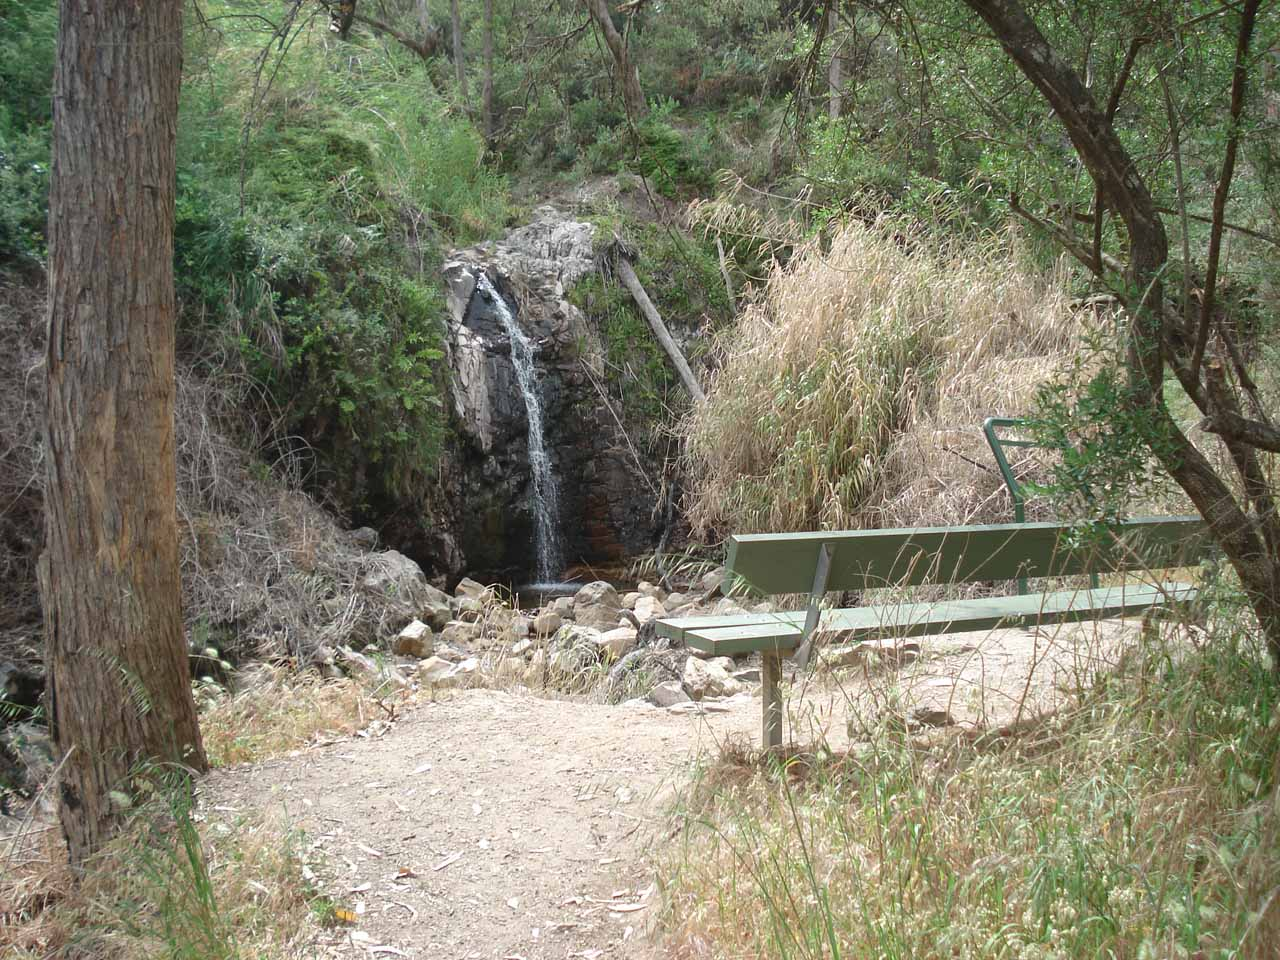 The Second Falls in the Waterfall Gully